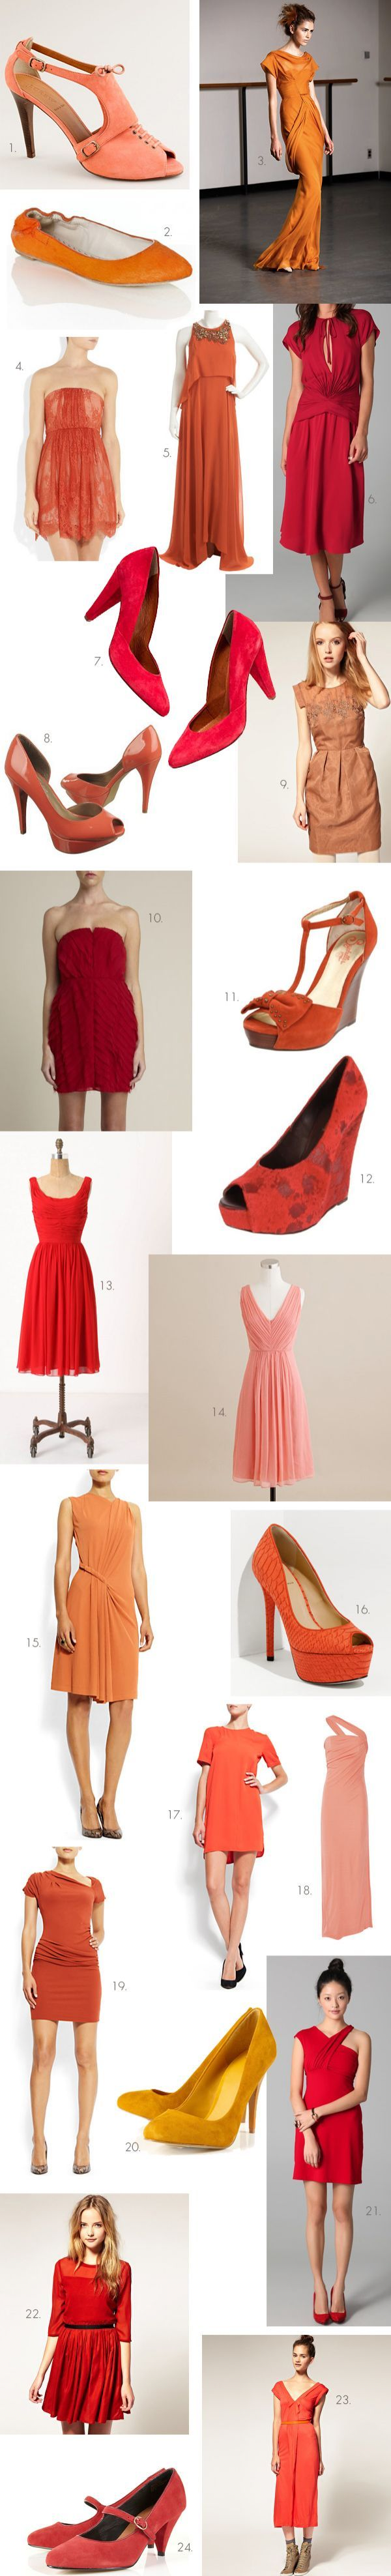 Colorful Fall Bridesmaid Dresses & Shoes